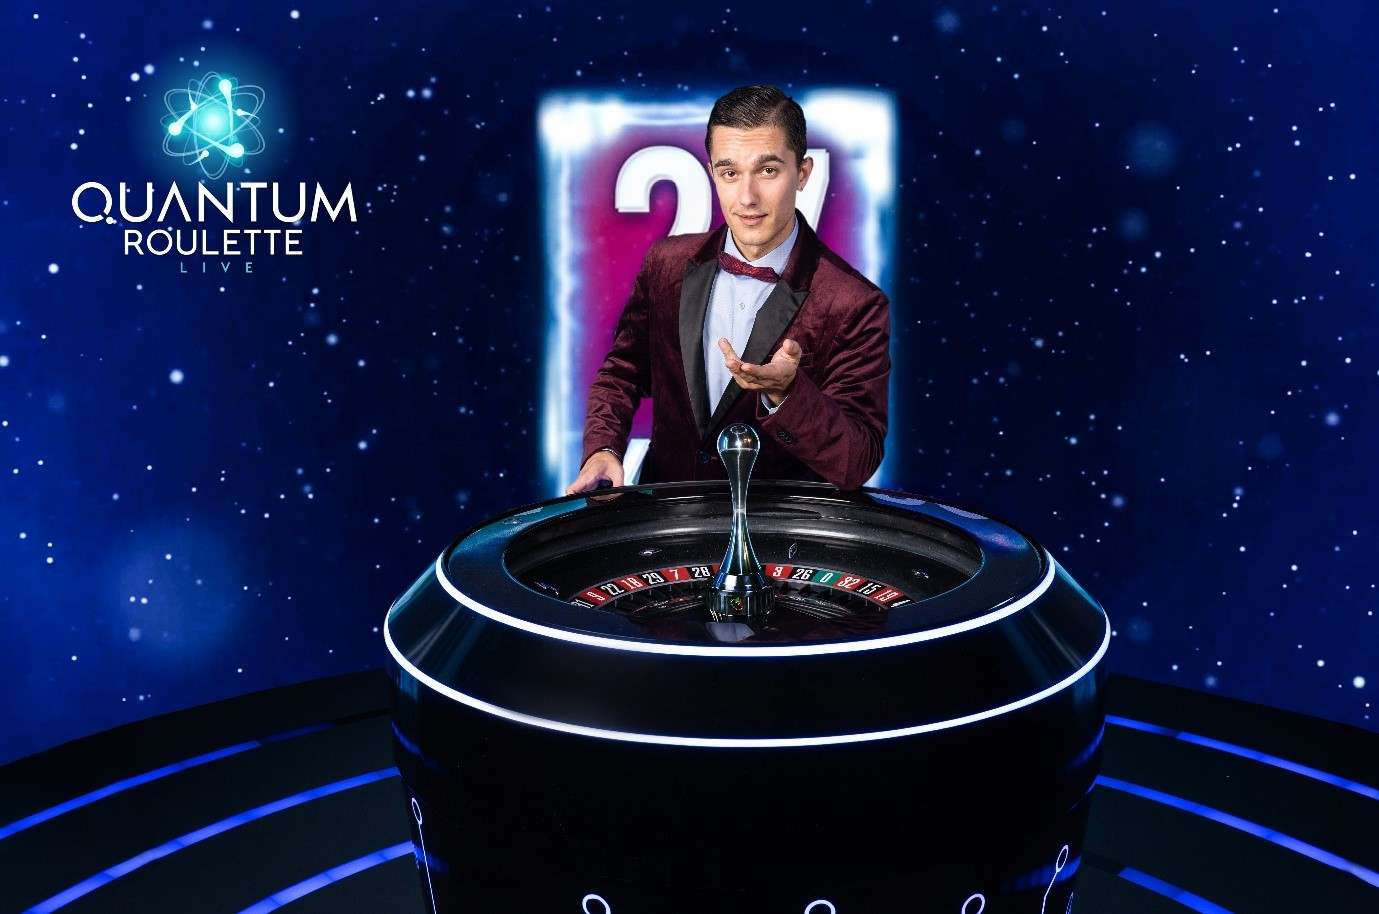 Boost your winnings by 500x with live quantum auto roulette now tips